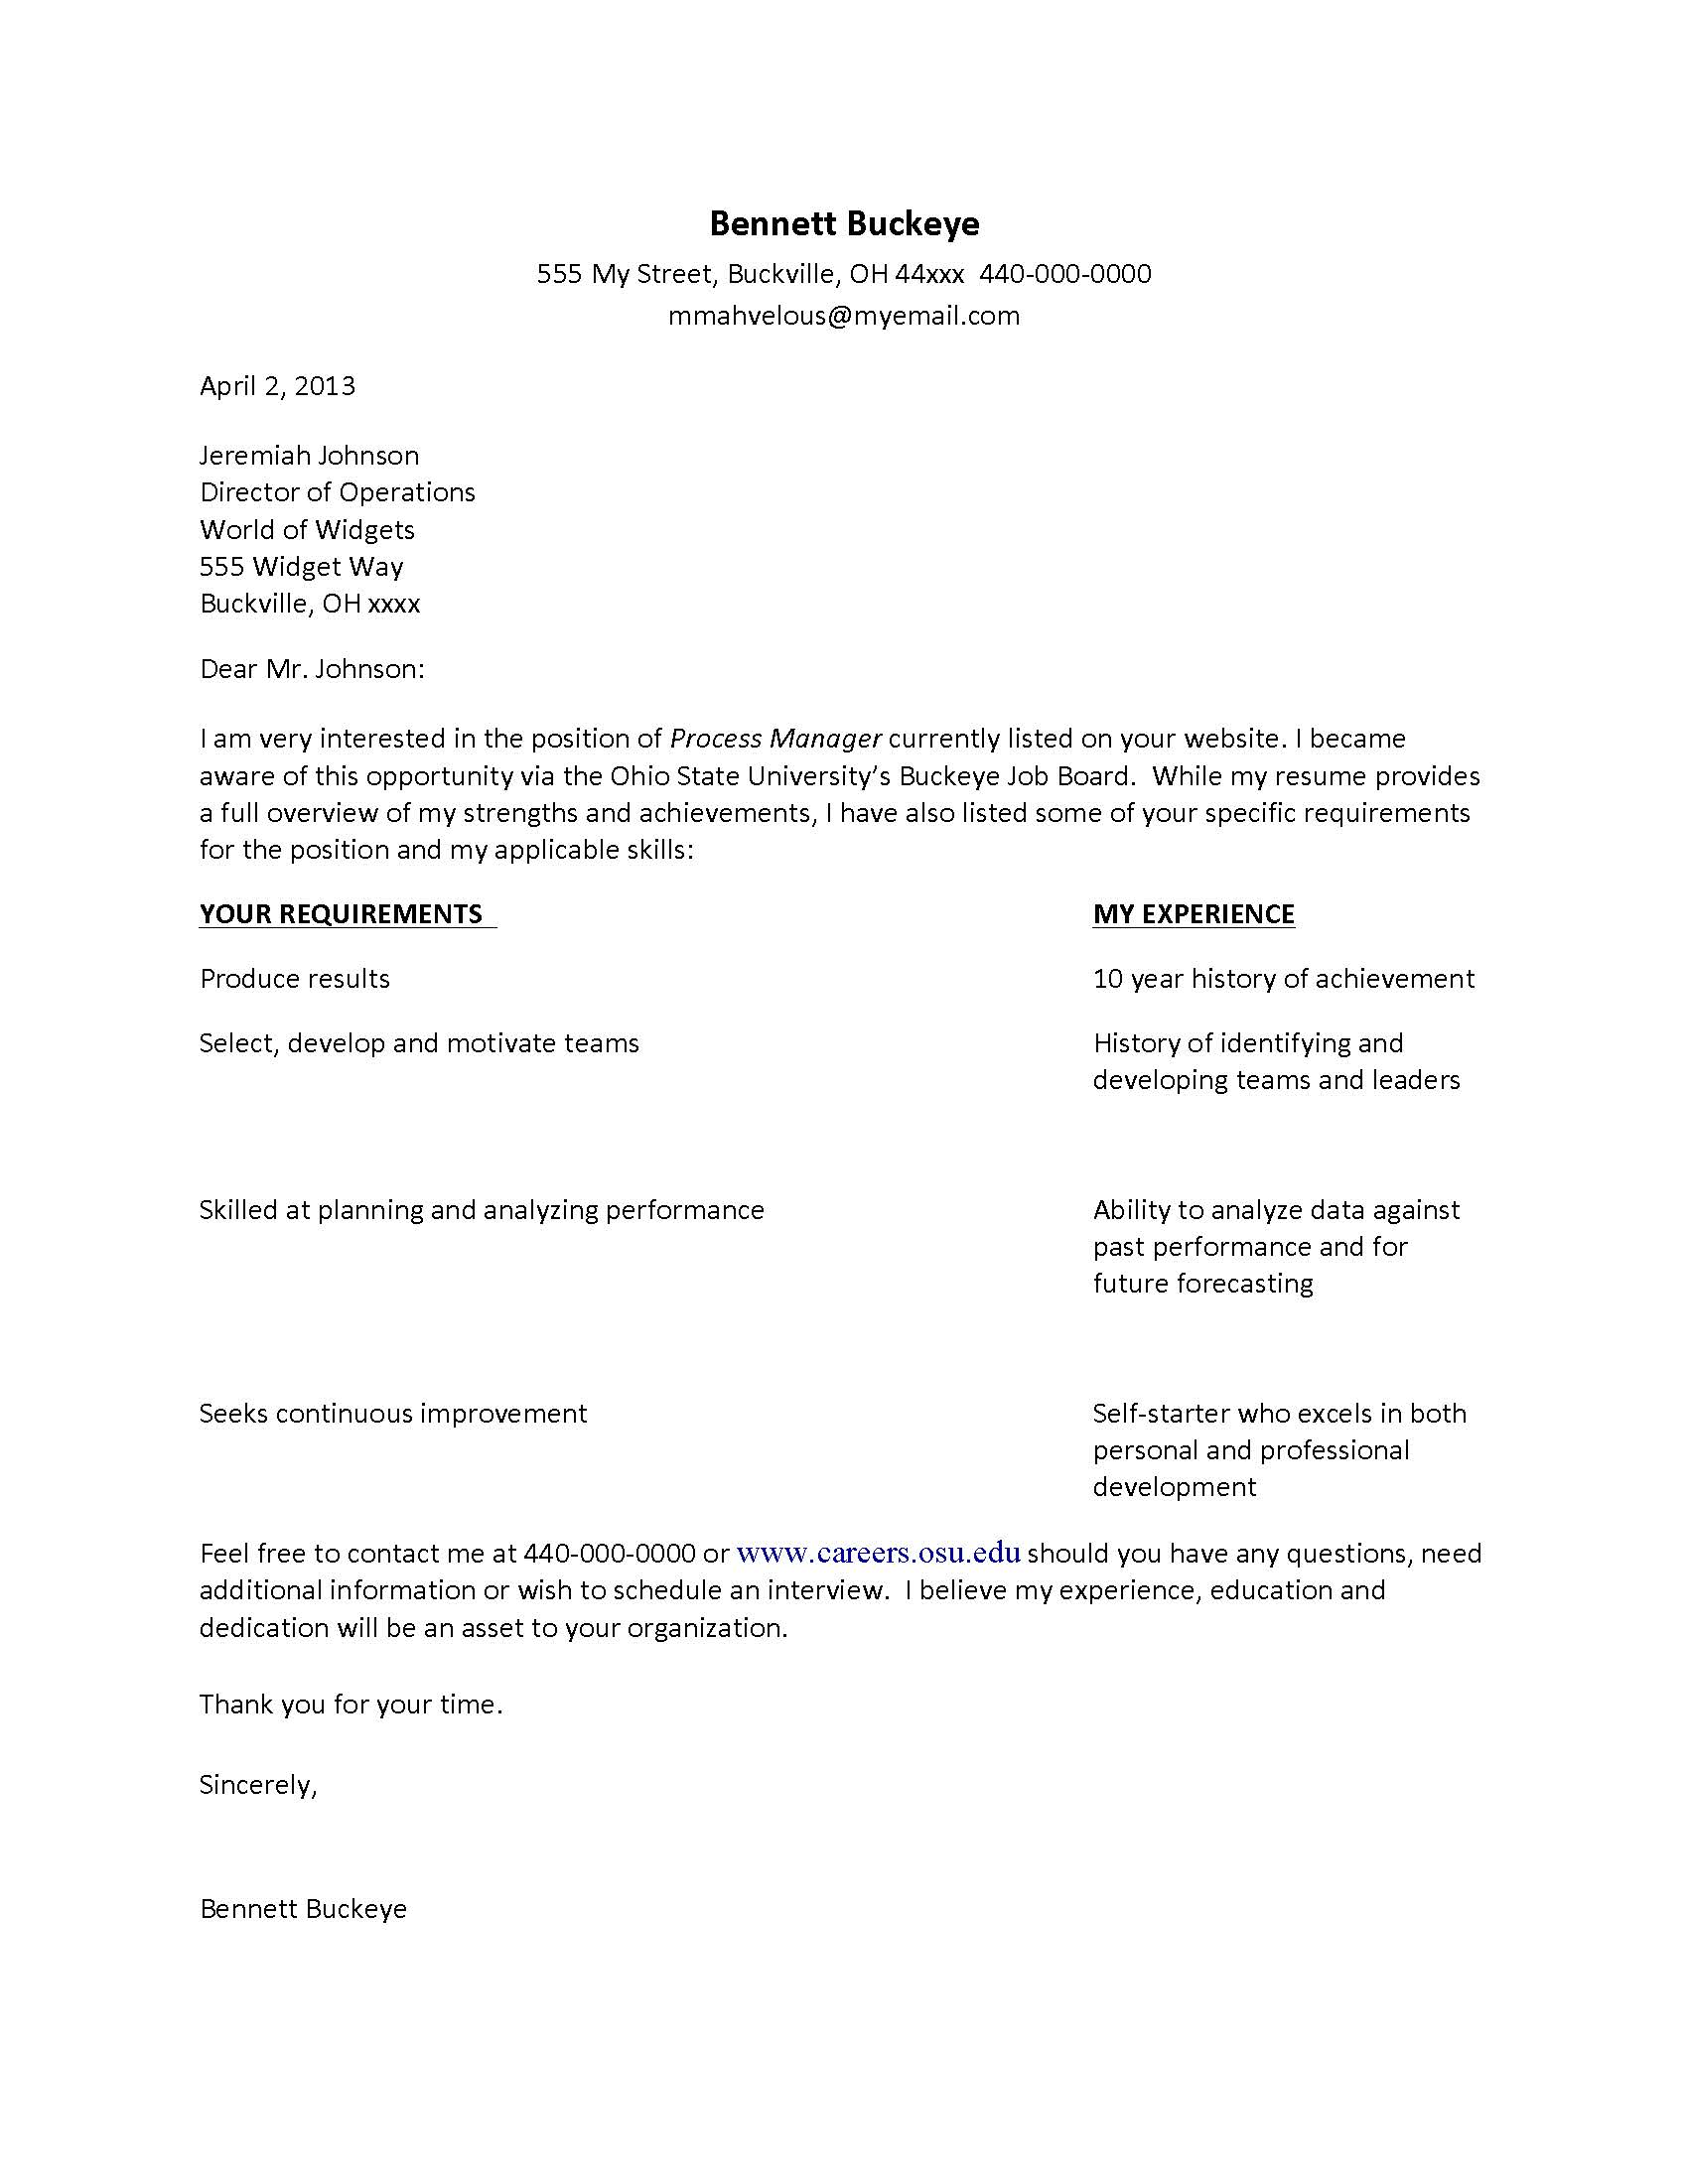 bcg cover letter resume format download pdf free sample resume and cover letters - Resume And Cover Letter Examples